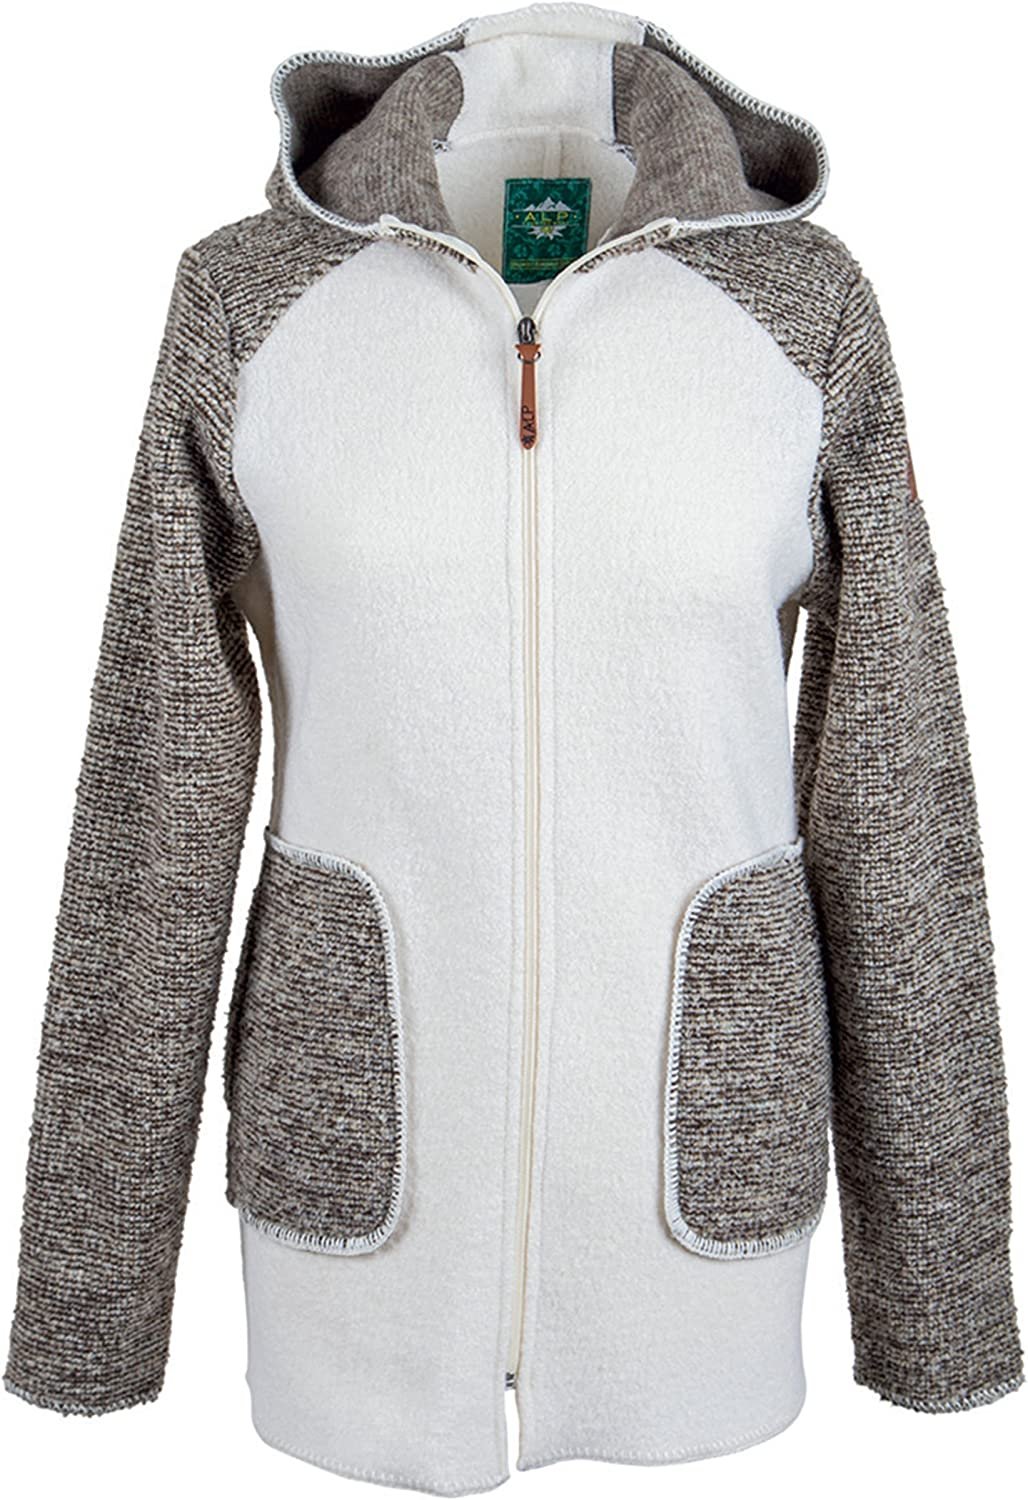 Alp by Brush Ladies AustrianWool with Hood and WoolMix Inserts